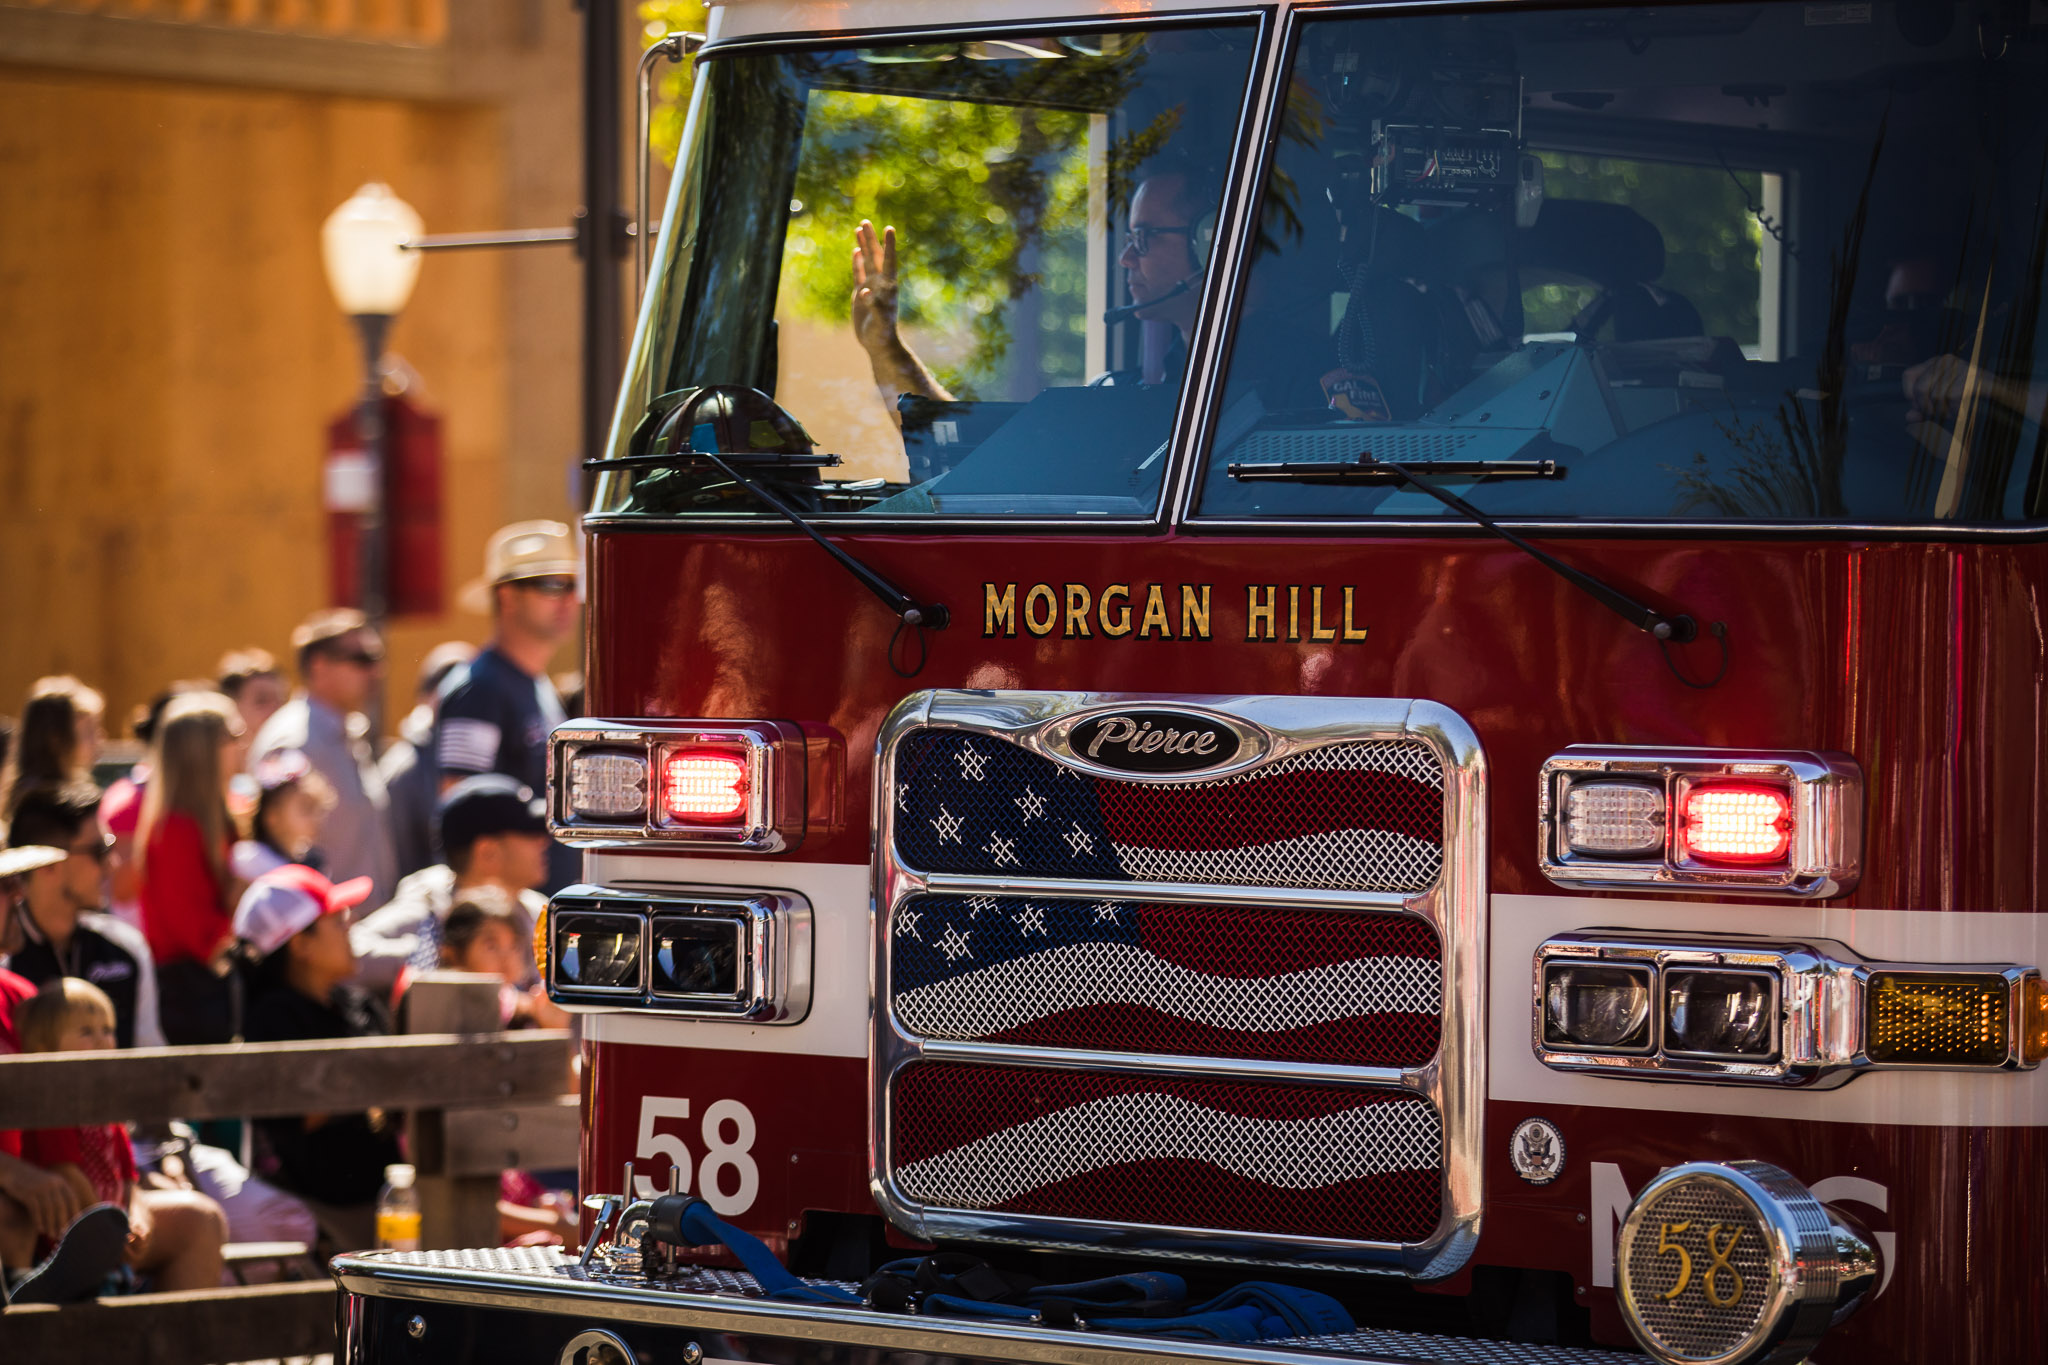 Archer_Inspired_Photography_Morgan_Hill_California_4th_of_july_parade-45.jpg